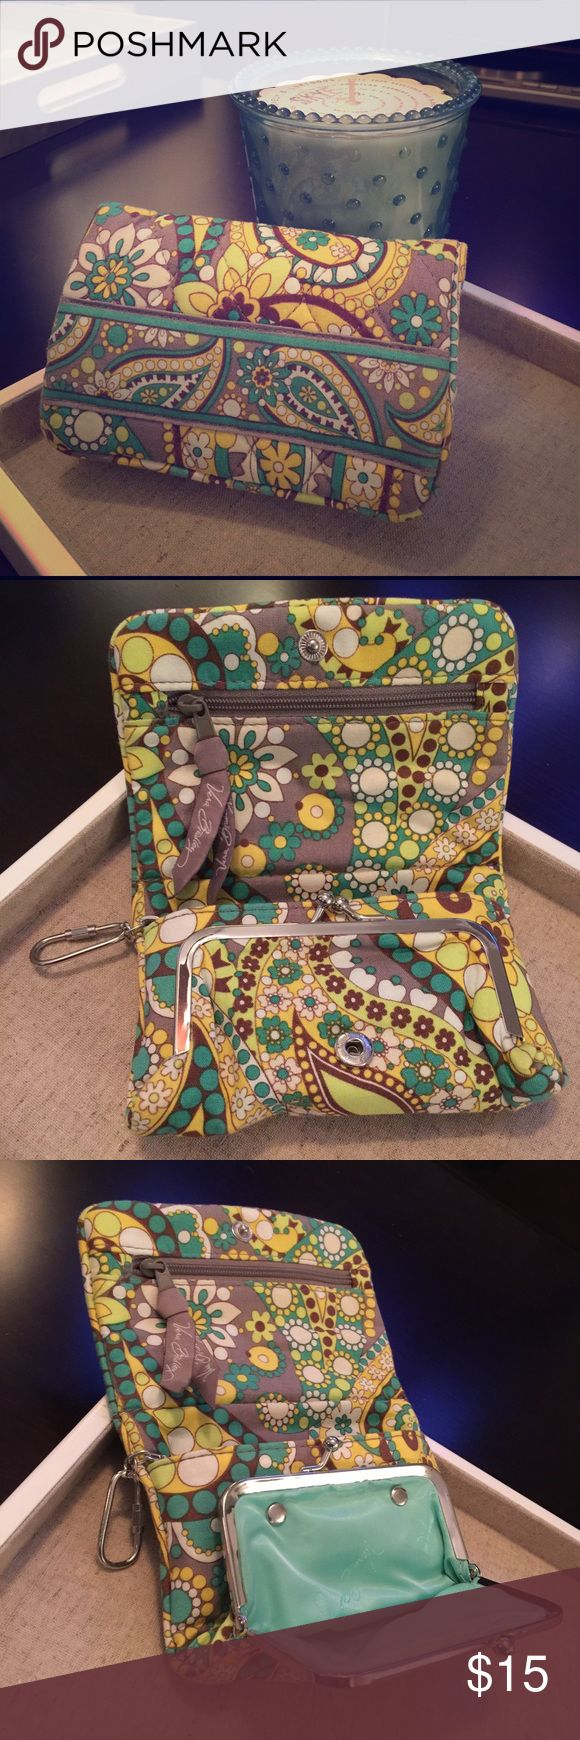 Vera Bradley paisley wallet This adorable paisley wallet by Vera Bradley has one zipper pocket and a clasped pocket in addition to the main pouch. On the outside, there is a clear sleeve for an ID card. Colors include a turquoise blue, bright green, golden yellow, brown and gray. This item has rarely been used and is in great/like-new condition. Vera Bradley Bags Wallets